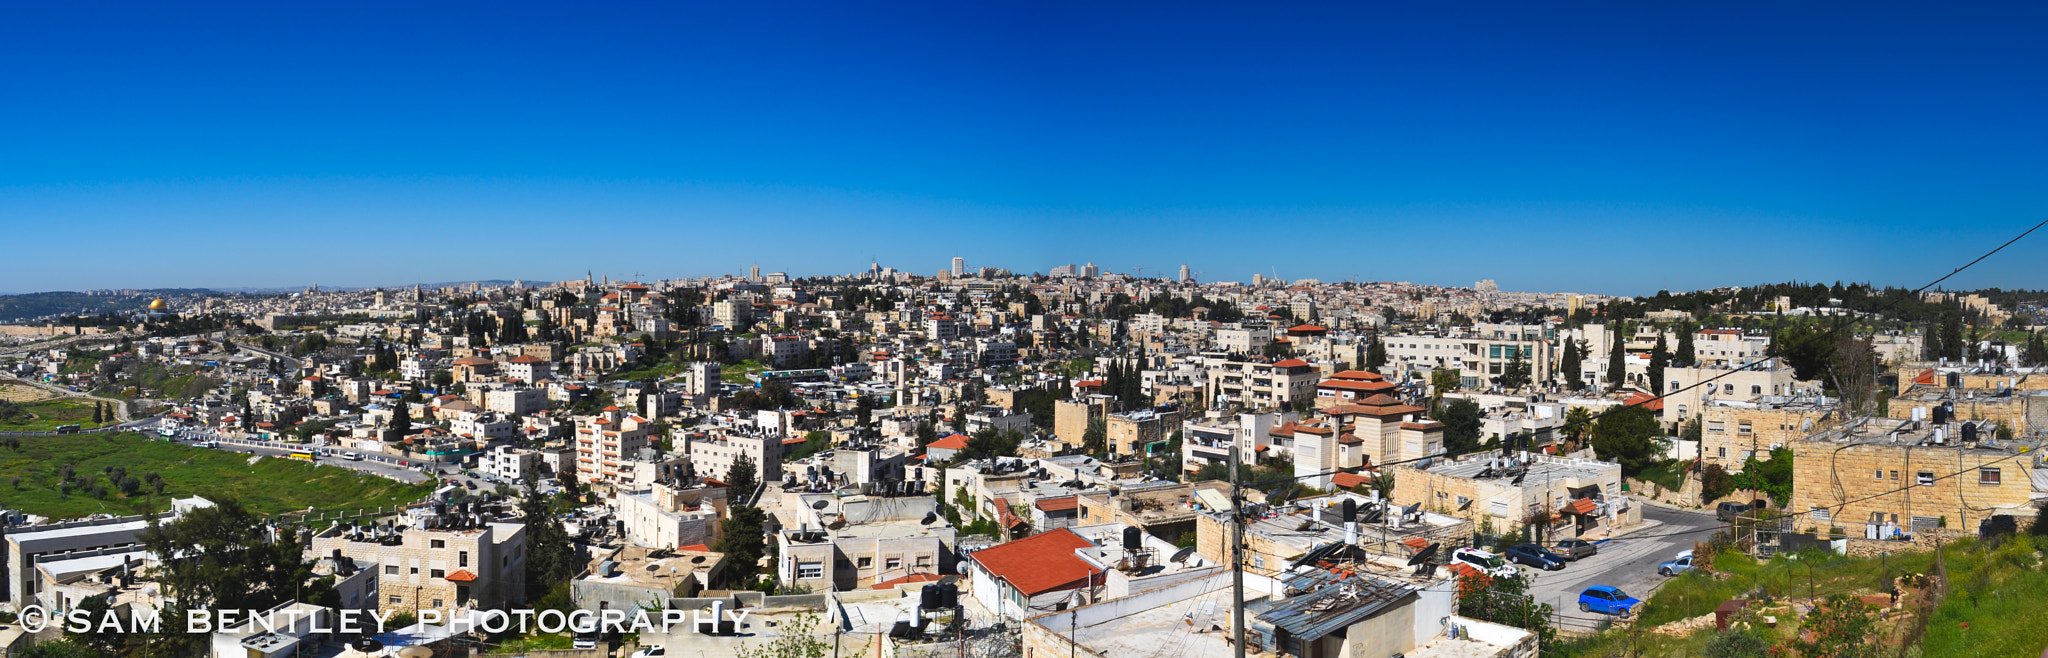 Photograph Israel Cityscape 2 by Sam Bentley on 500px